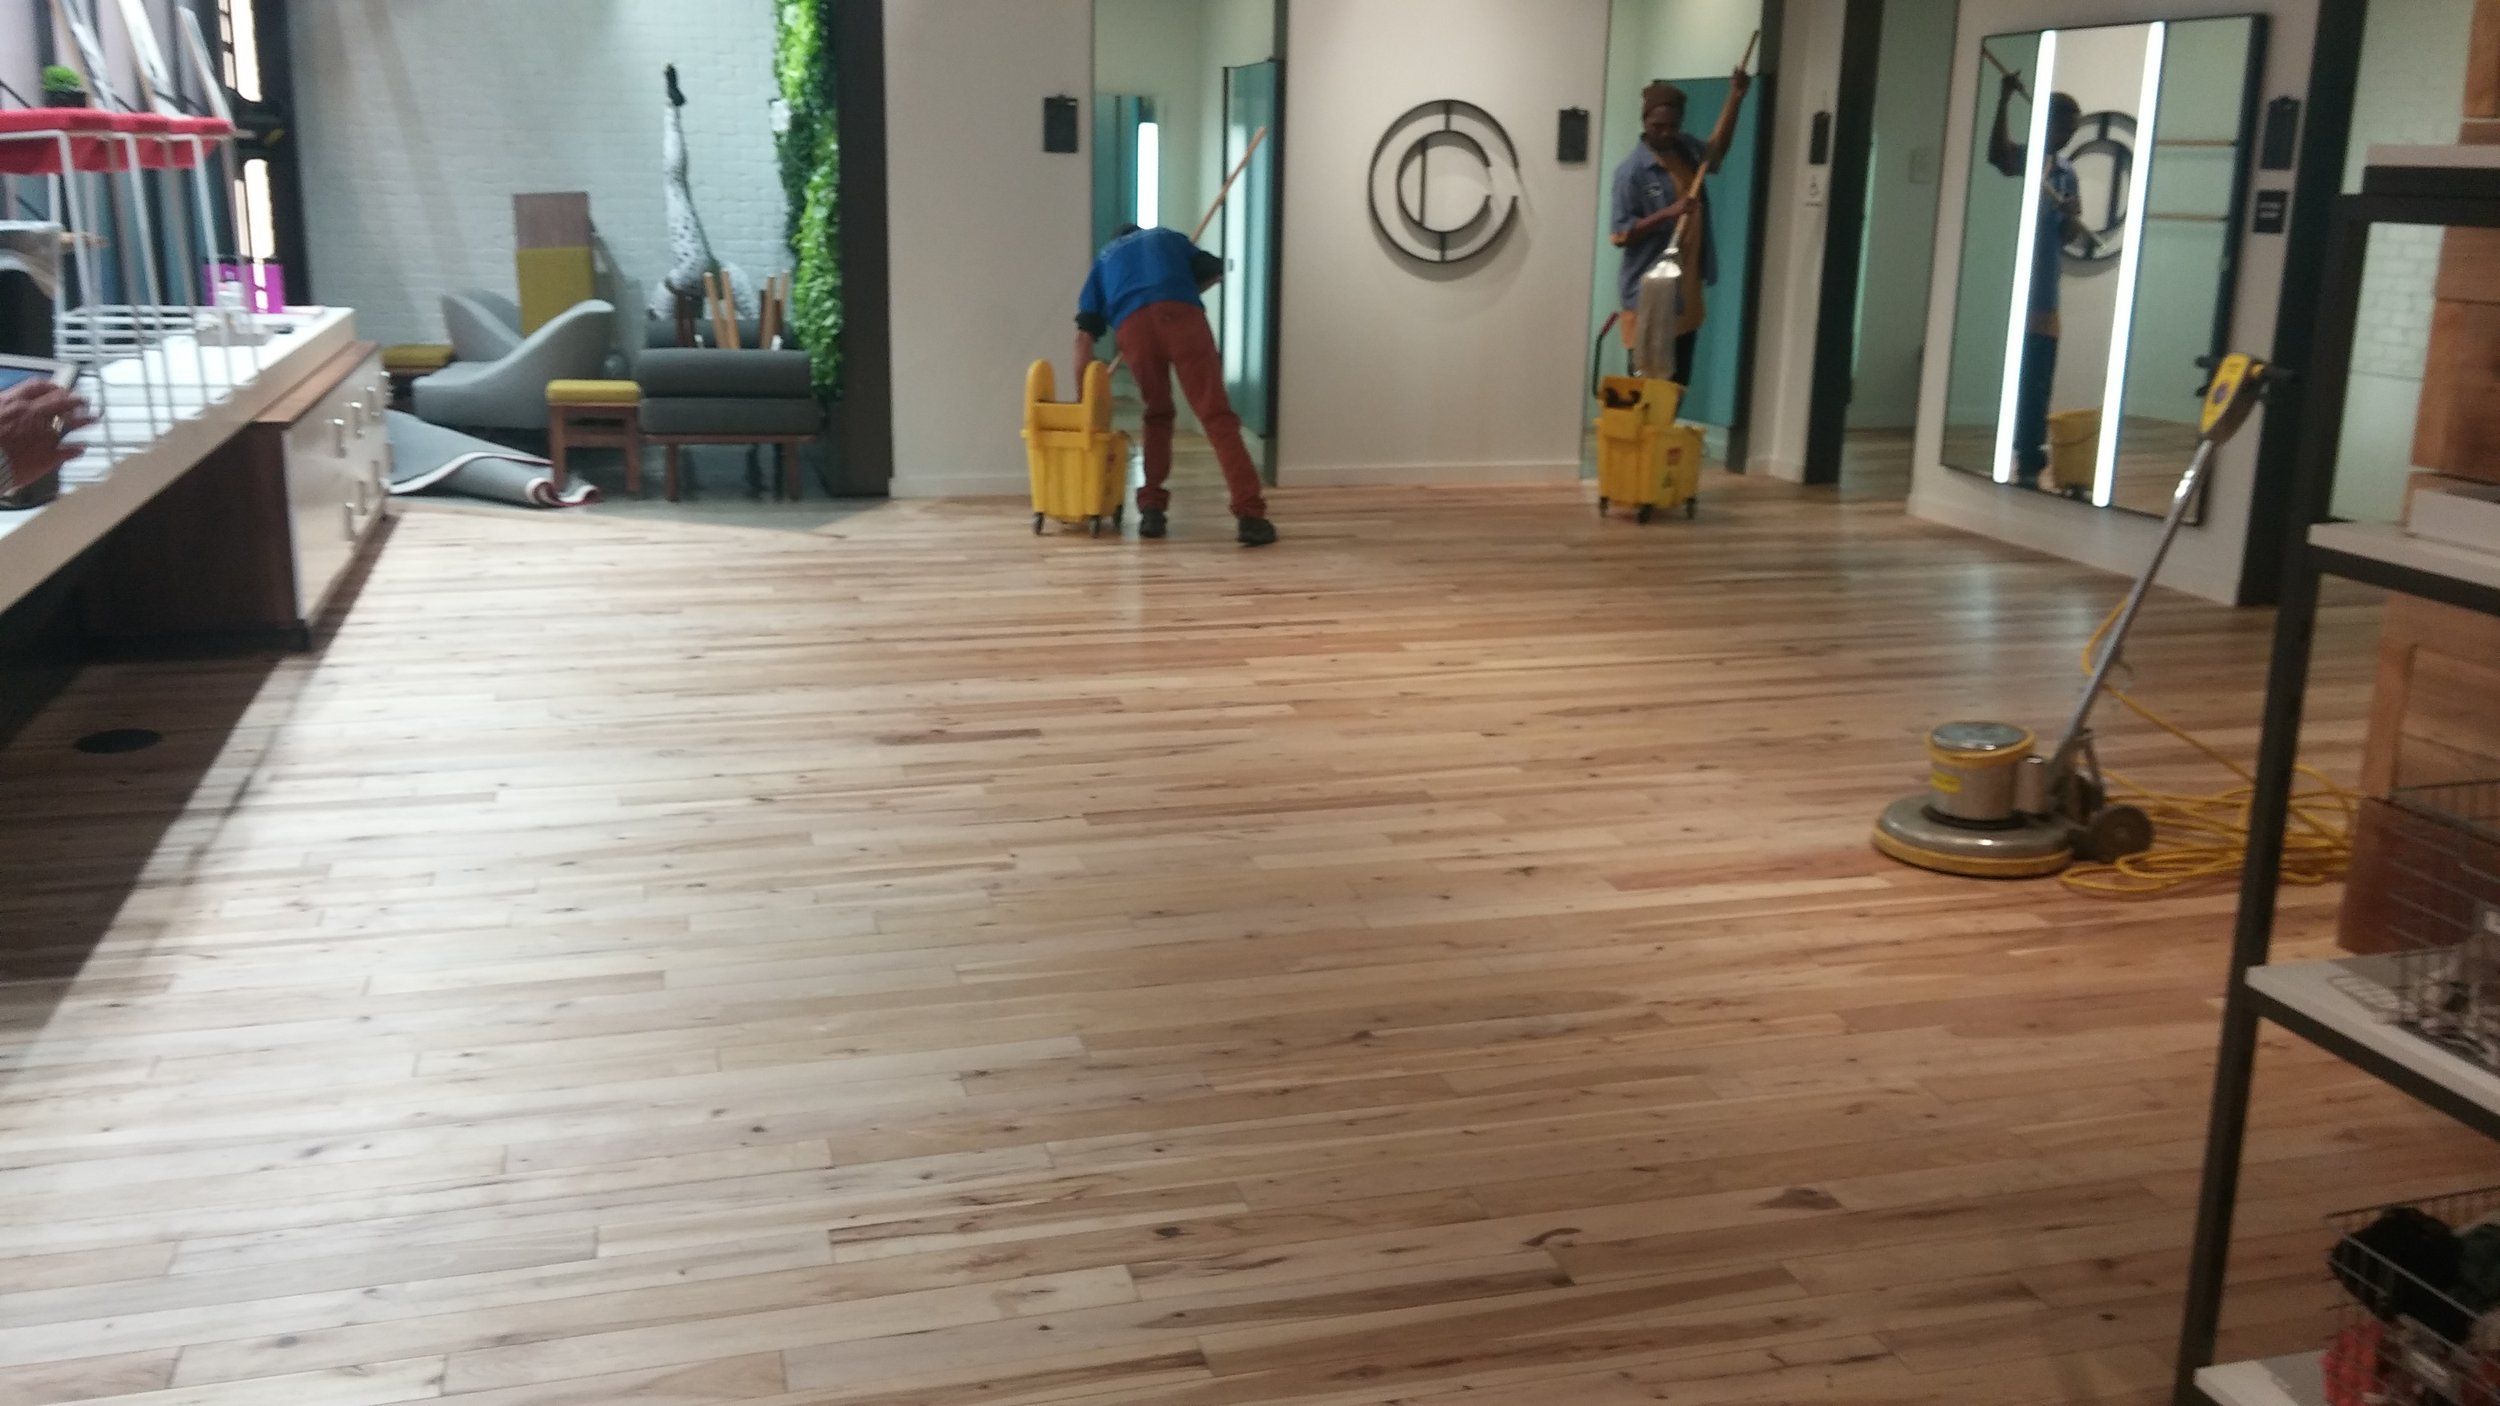 Re-oiling after flood, supervised by TB personnel.